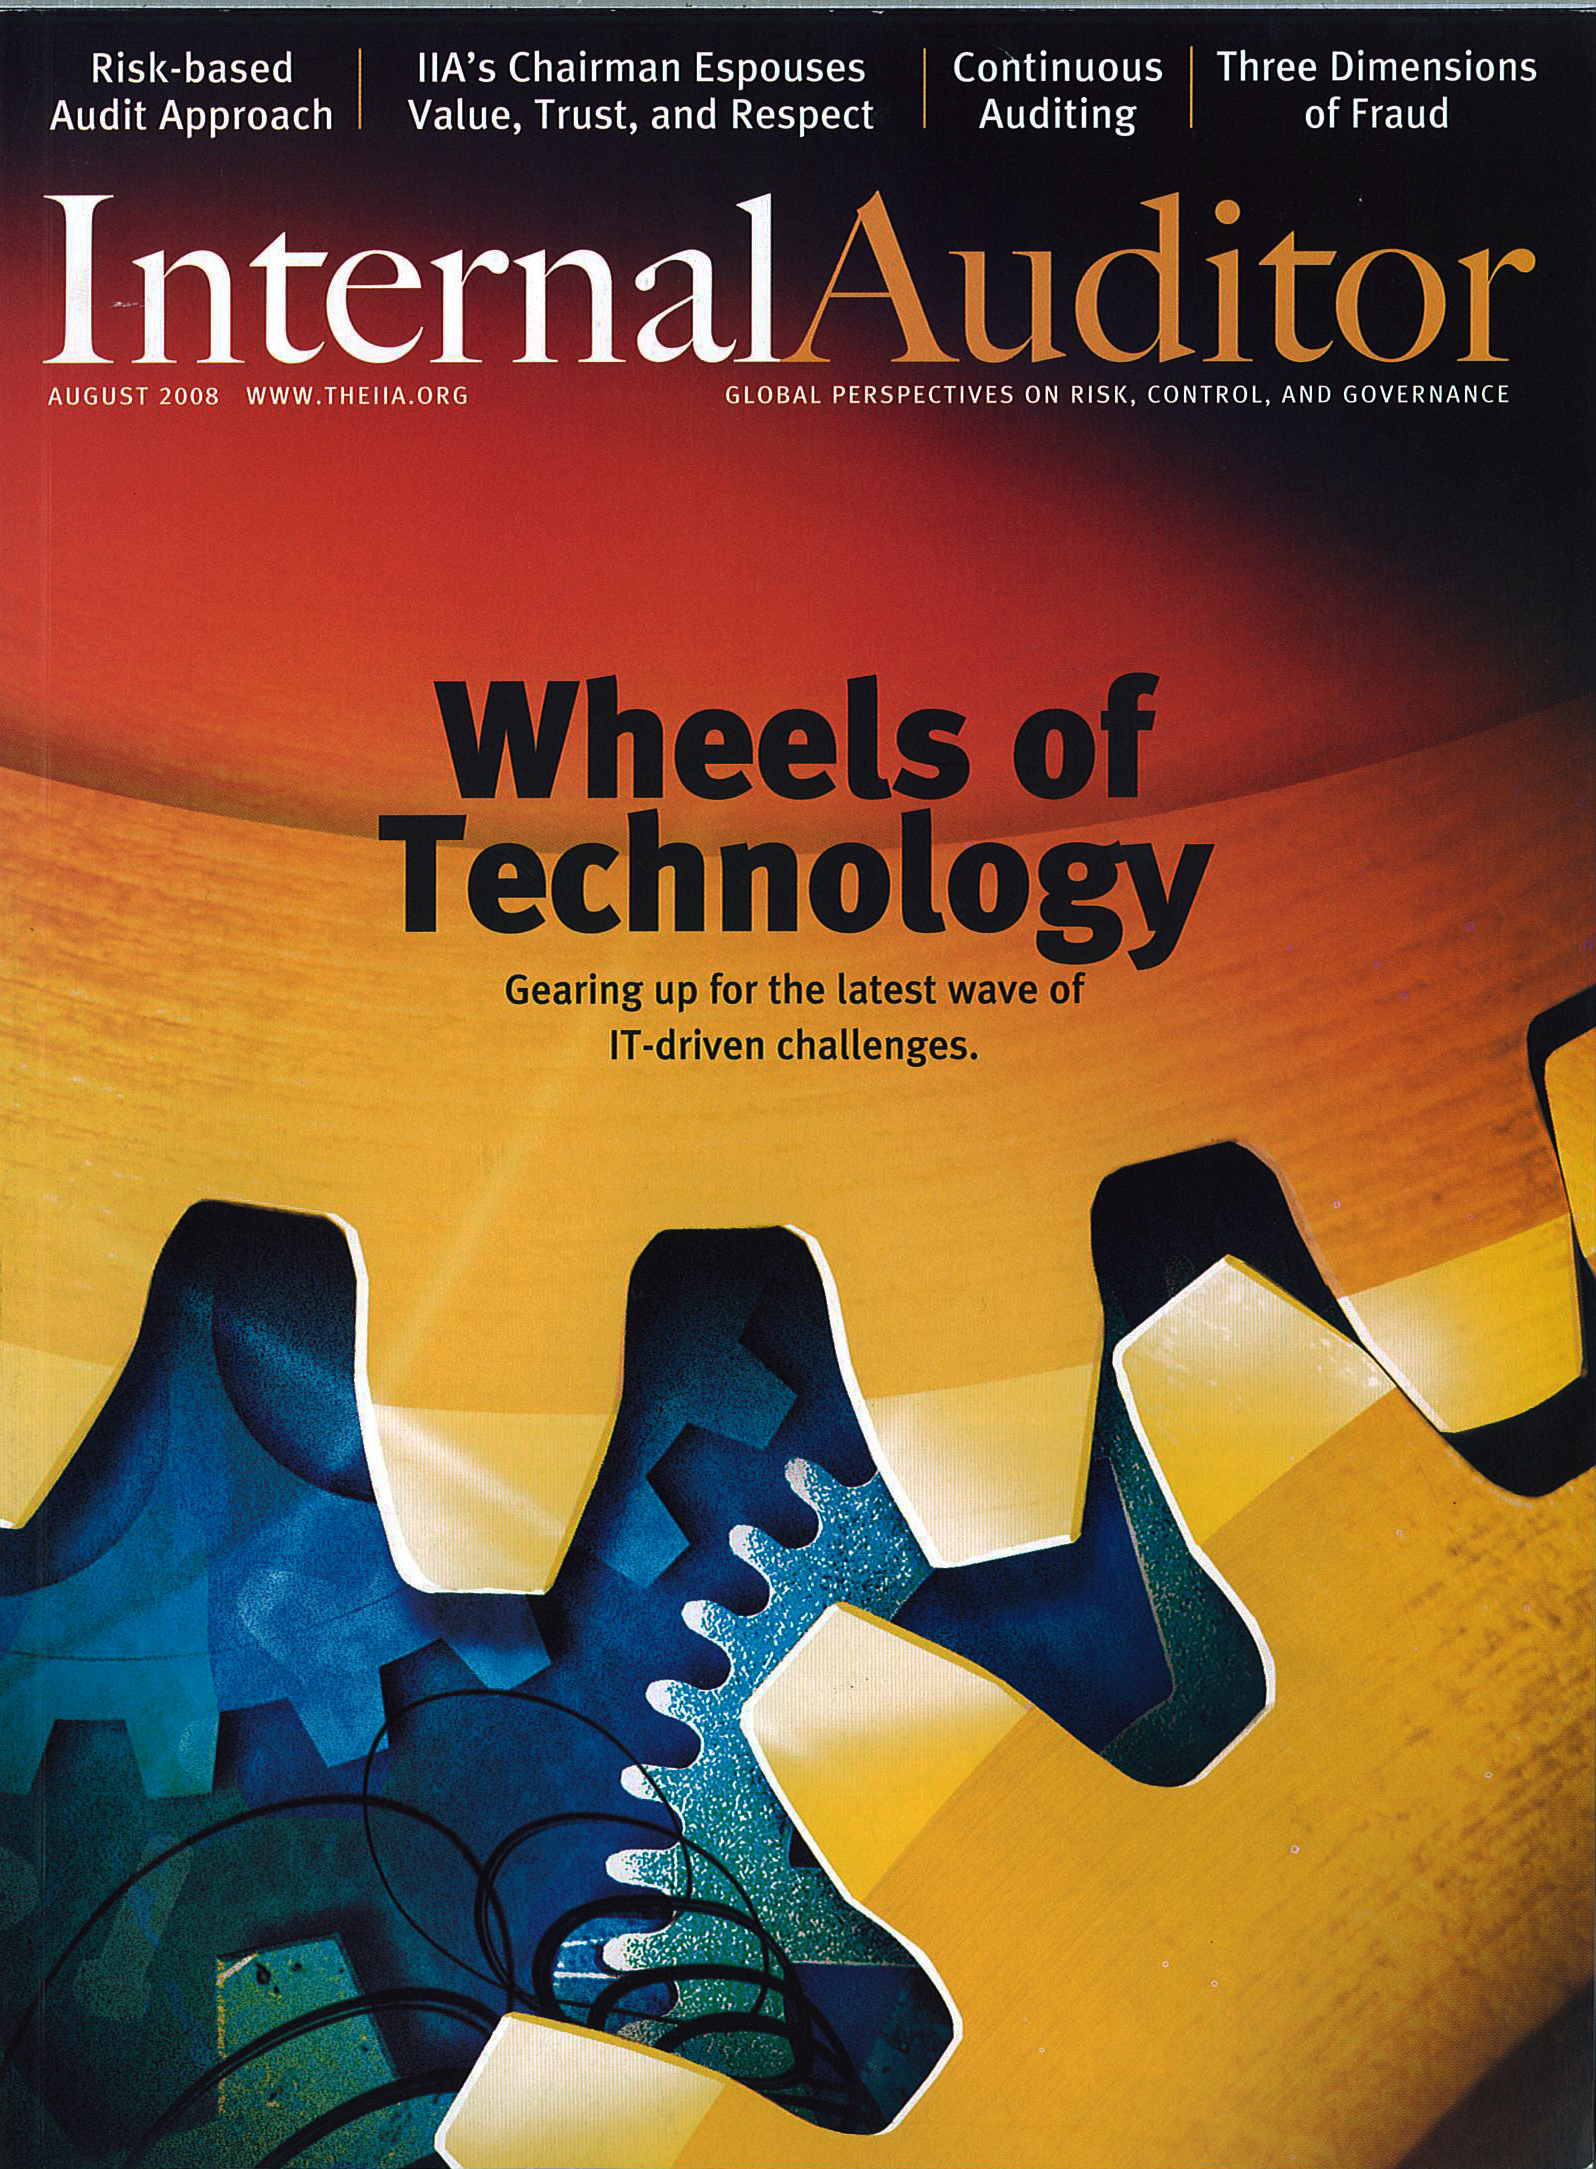 Internal Auditor magazine cover